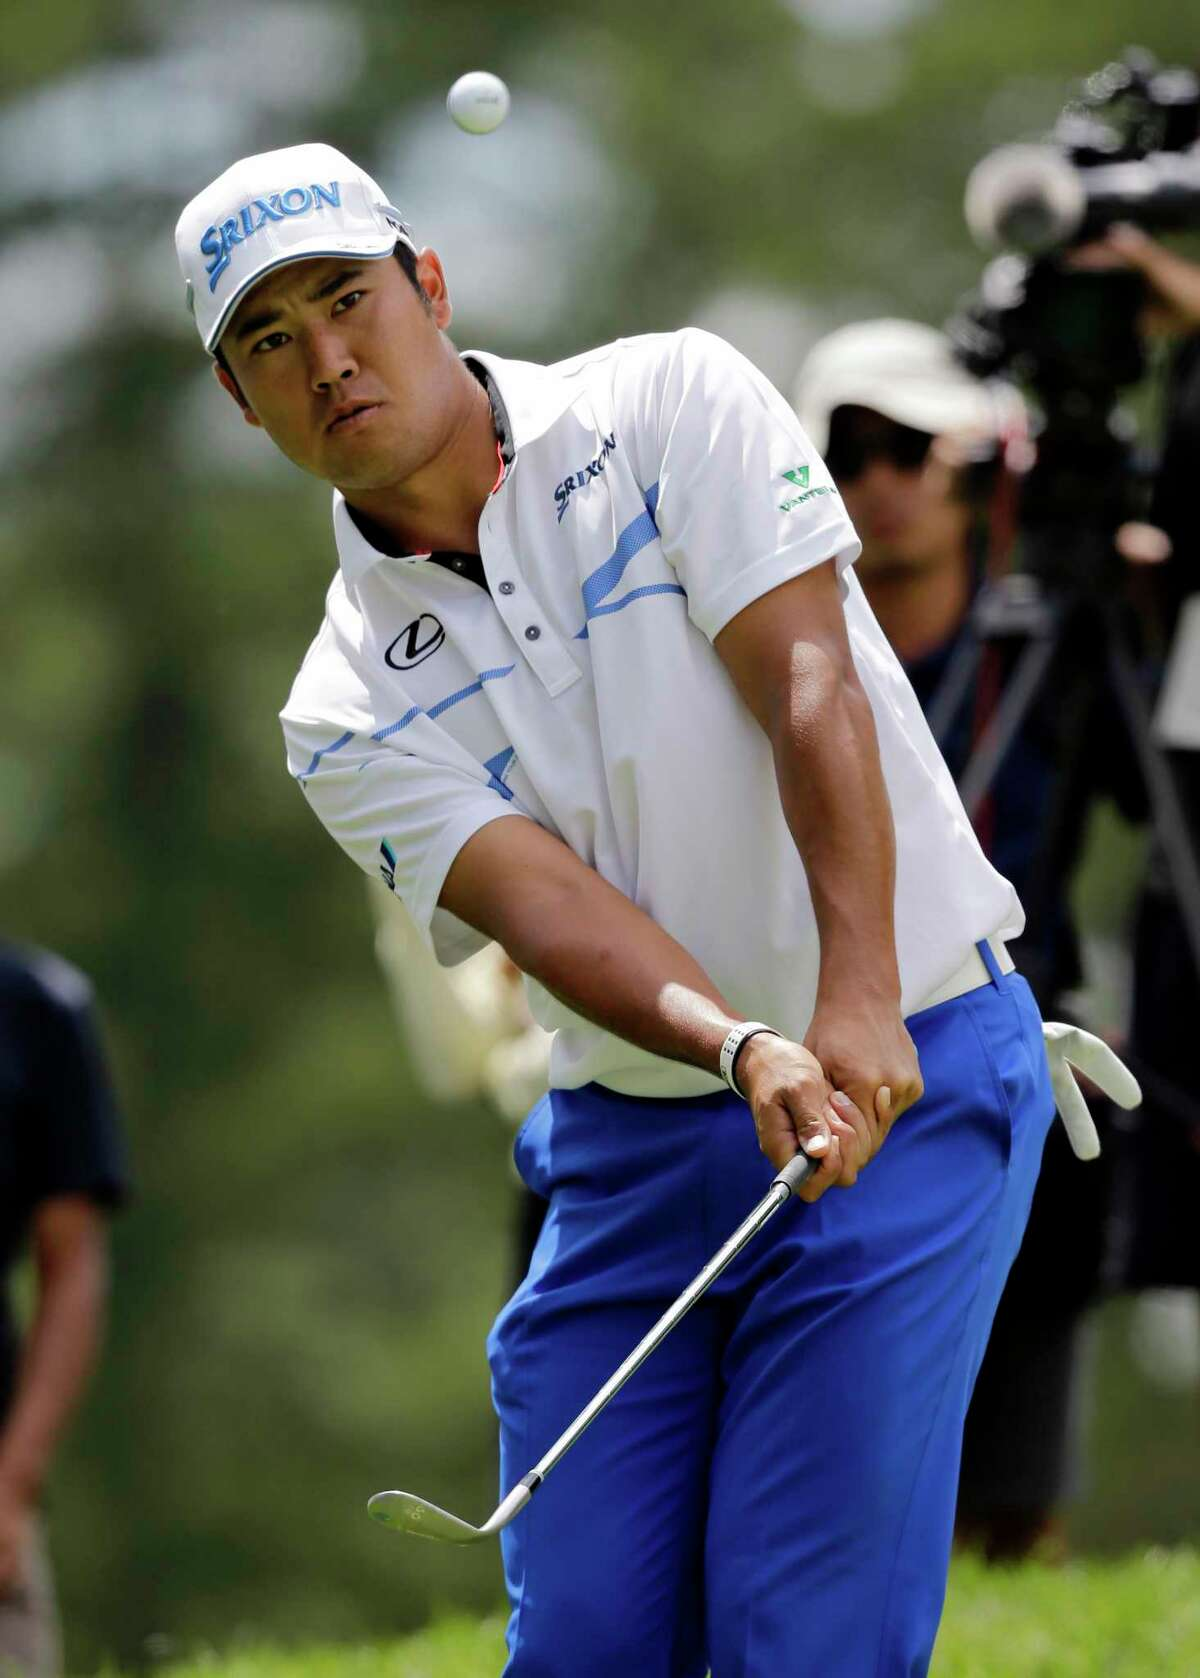 Hideki Matsuyama, from Japan, chips in the ball for an eagle on the second green during the final round of the Bridgestone Invitational golf tournament at Firestone Country Club, Sunday, Aug. 6, 2017, in Akron, Ohio. (AP Photo/Tony Dejak)